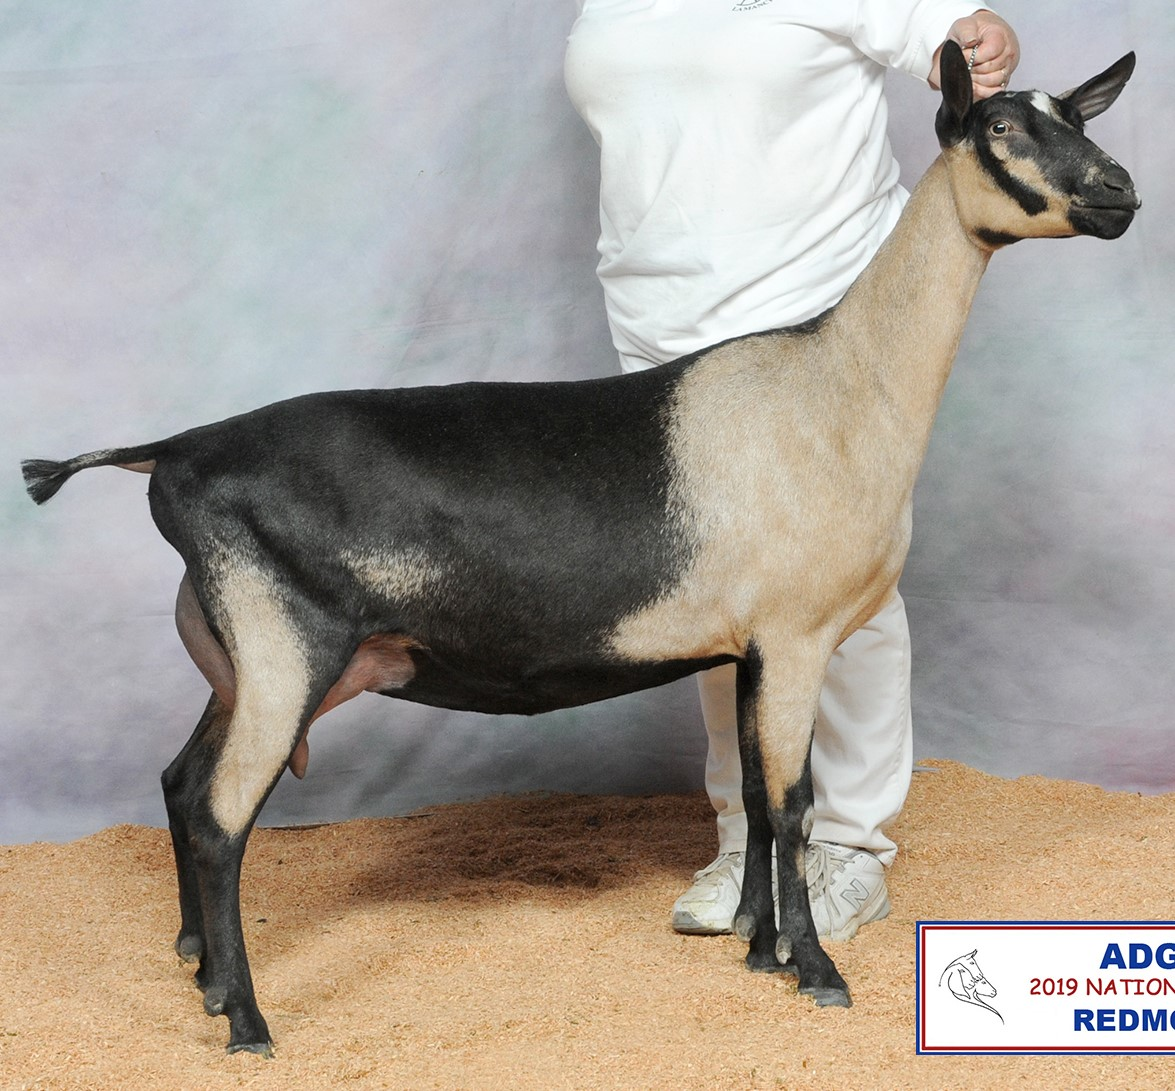 ROO @ 2019 National Show, age 2